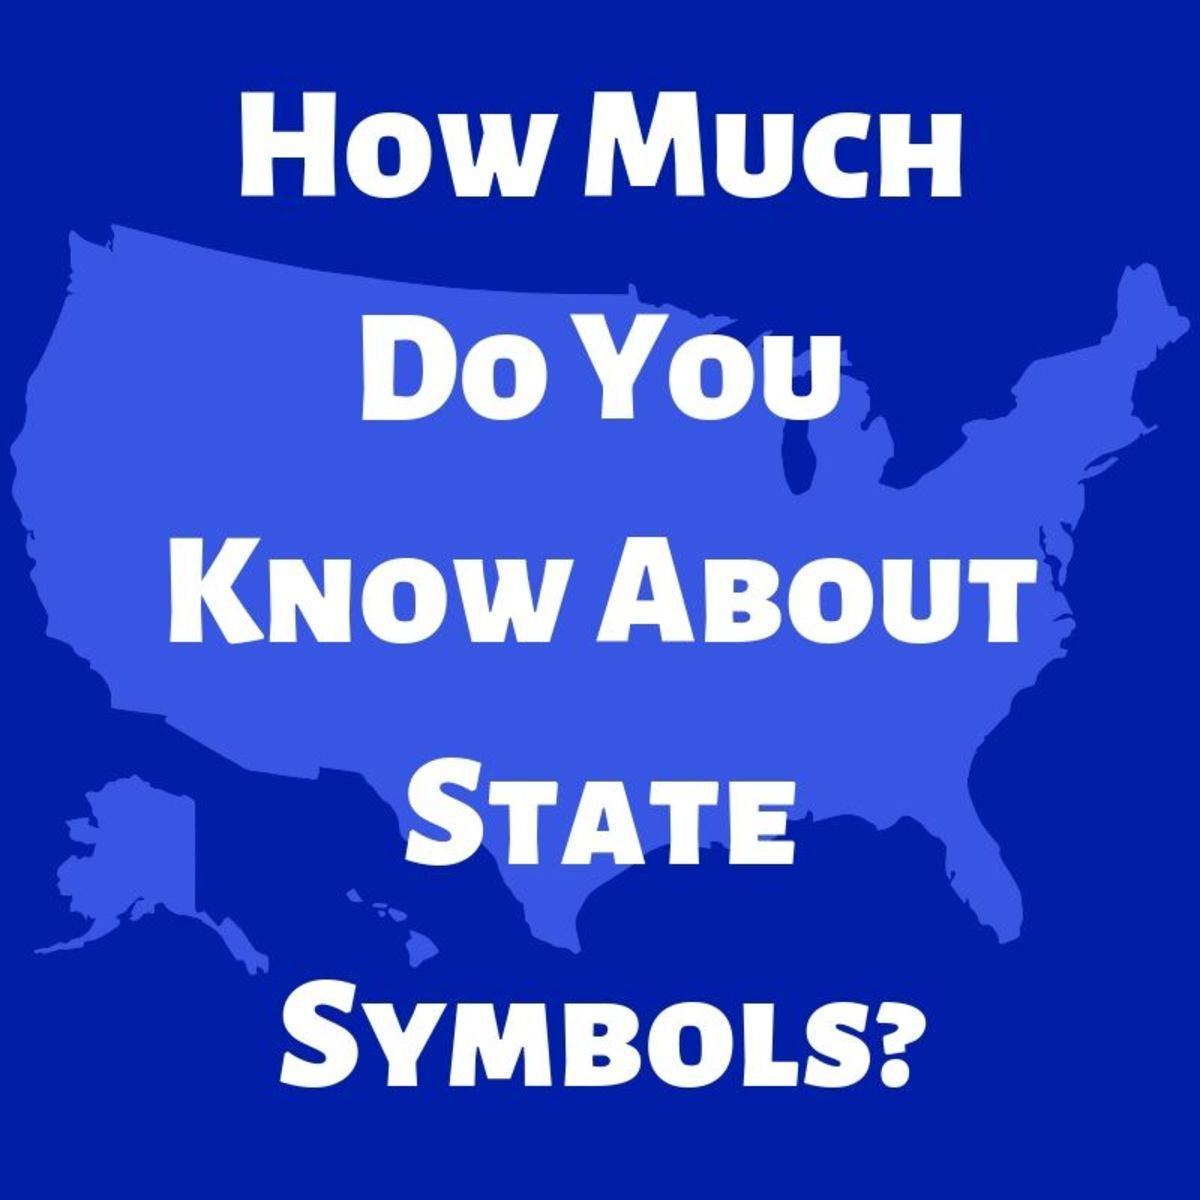 Are you an expert on the states? Use this quiz to test your knowledge!